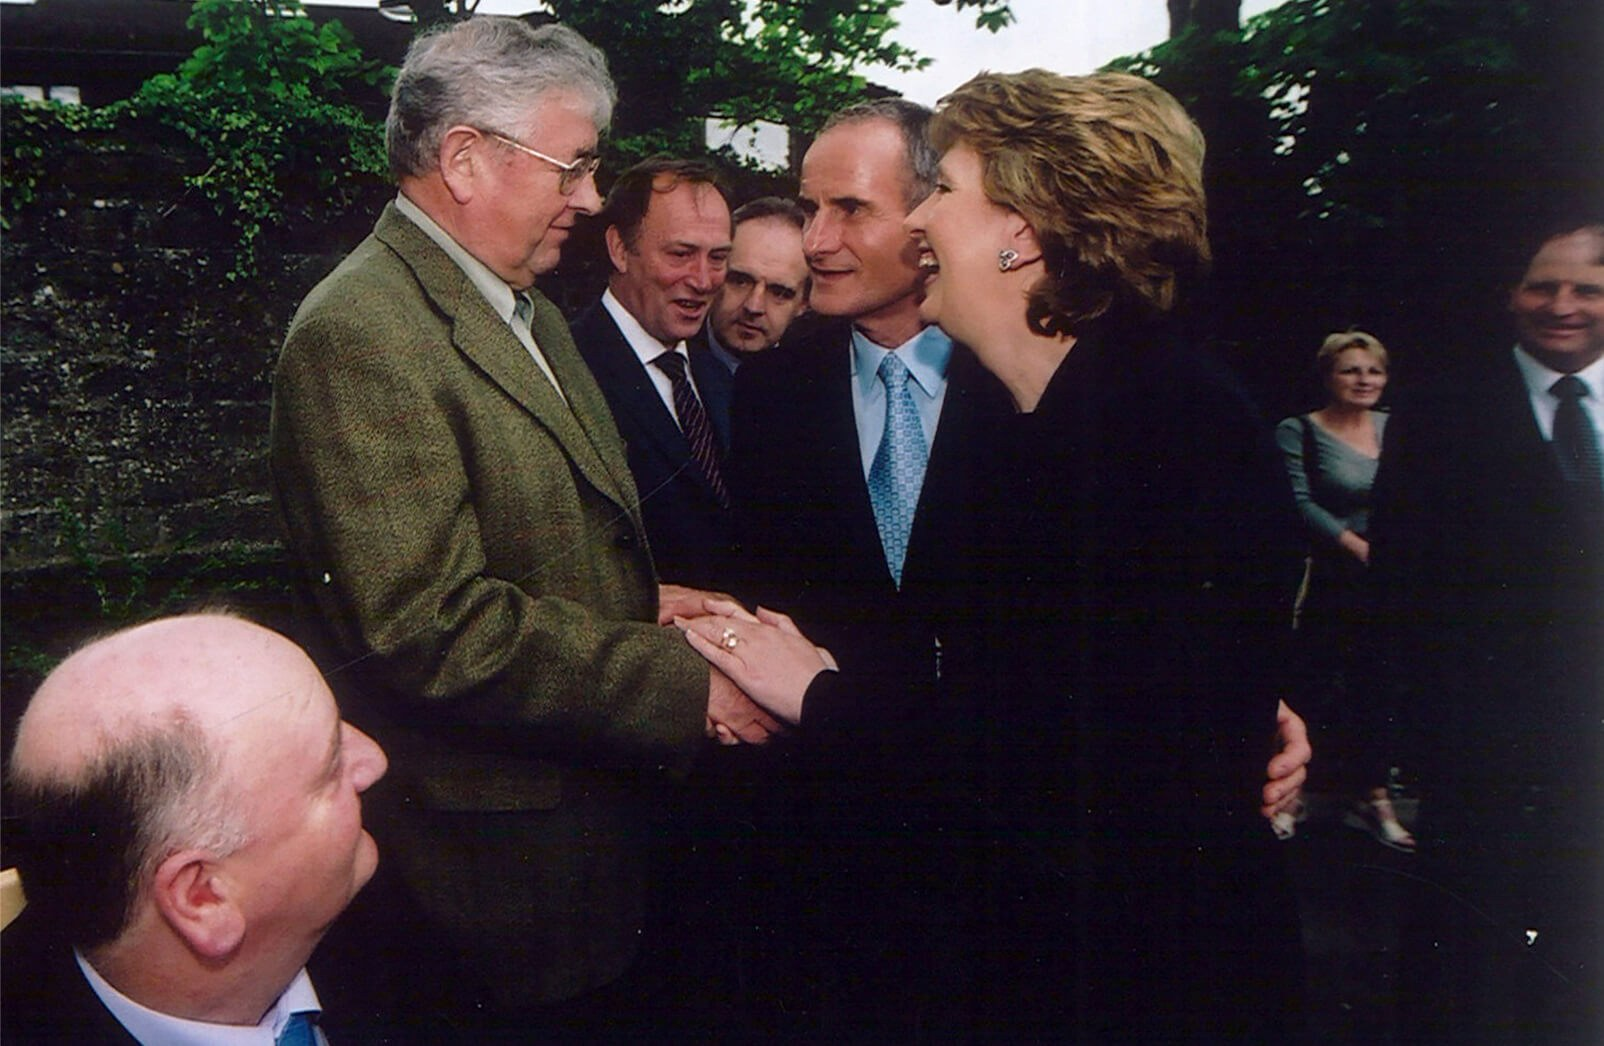 CJ-Ron-Falconer-with-Martin-McAleese-and-President-Mary-McAleese-Cheshire-Homes-Waterford.jpg#asset:2371